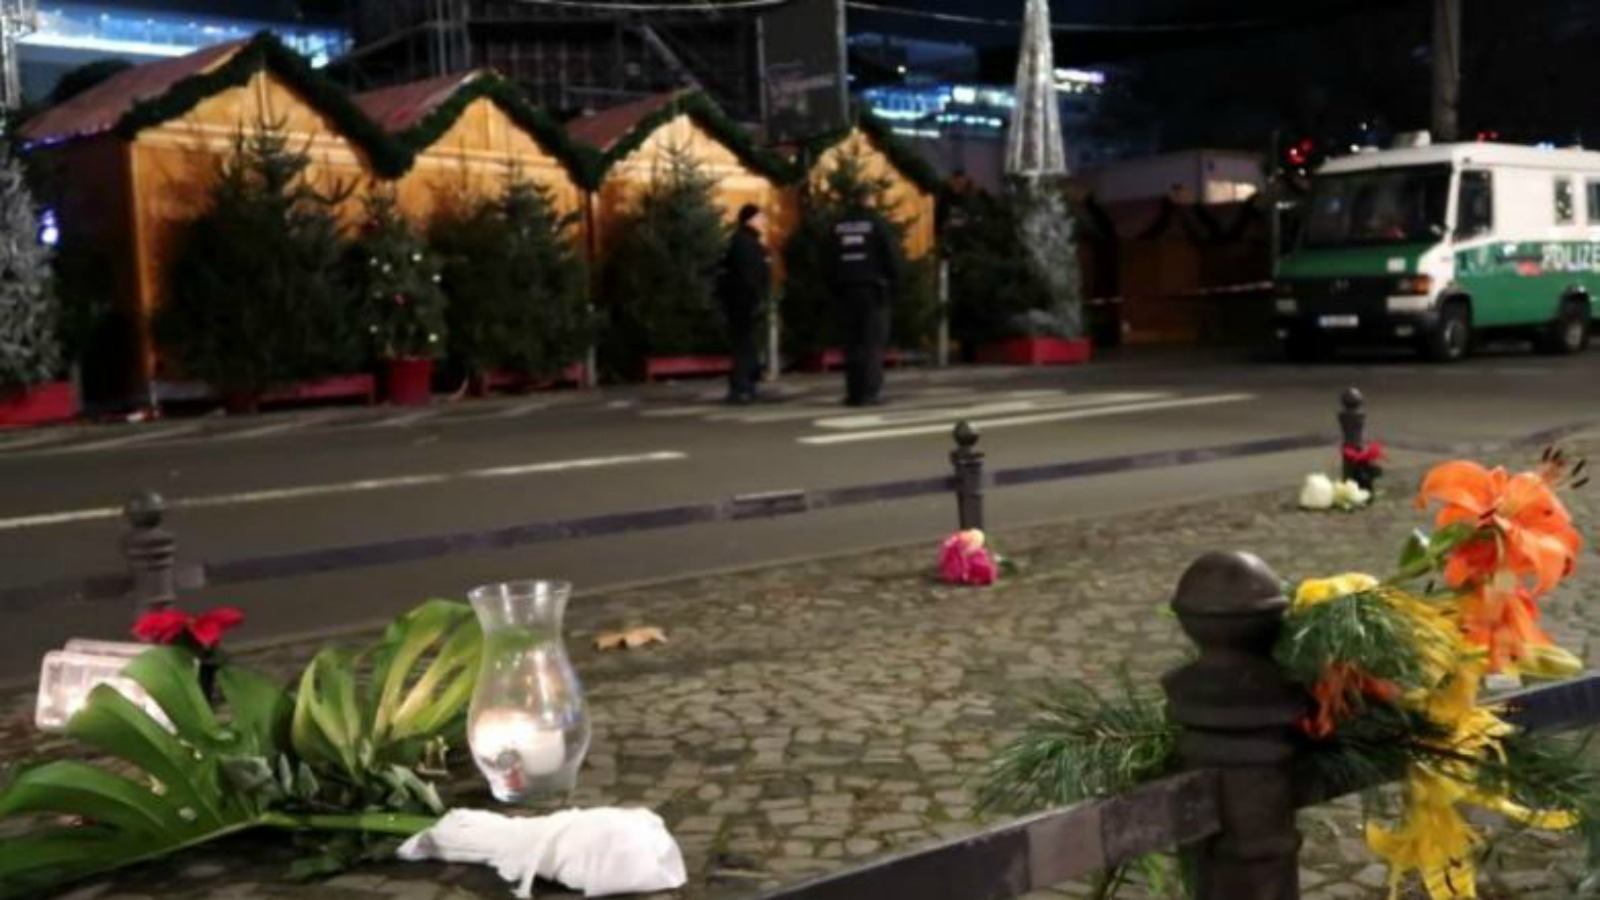 Berlin Christmas Market.Berlin Christmas Market Attack Affects All Europe